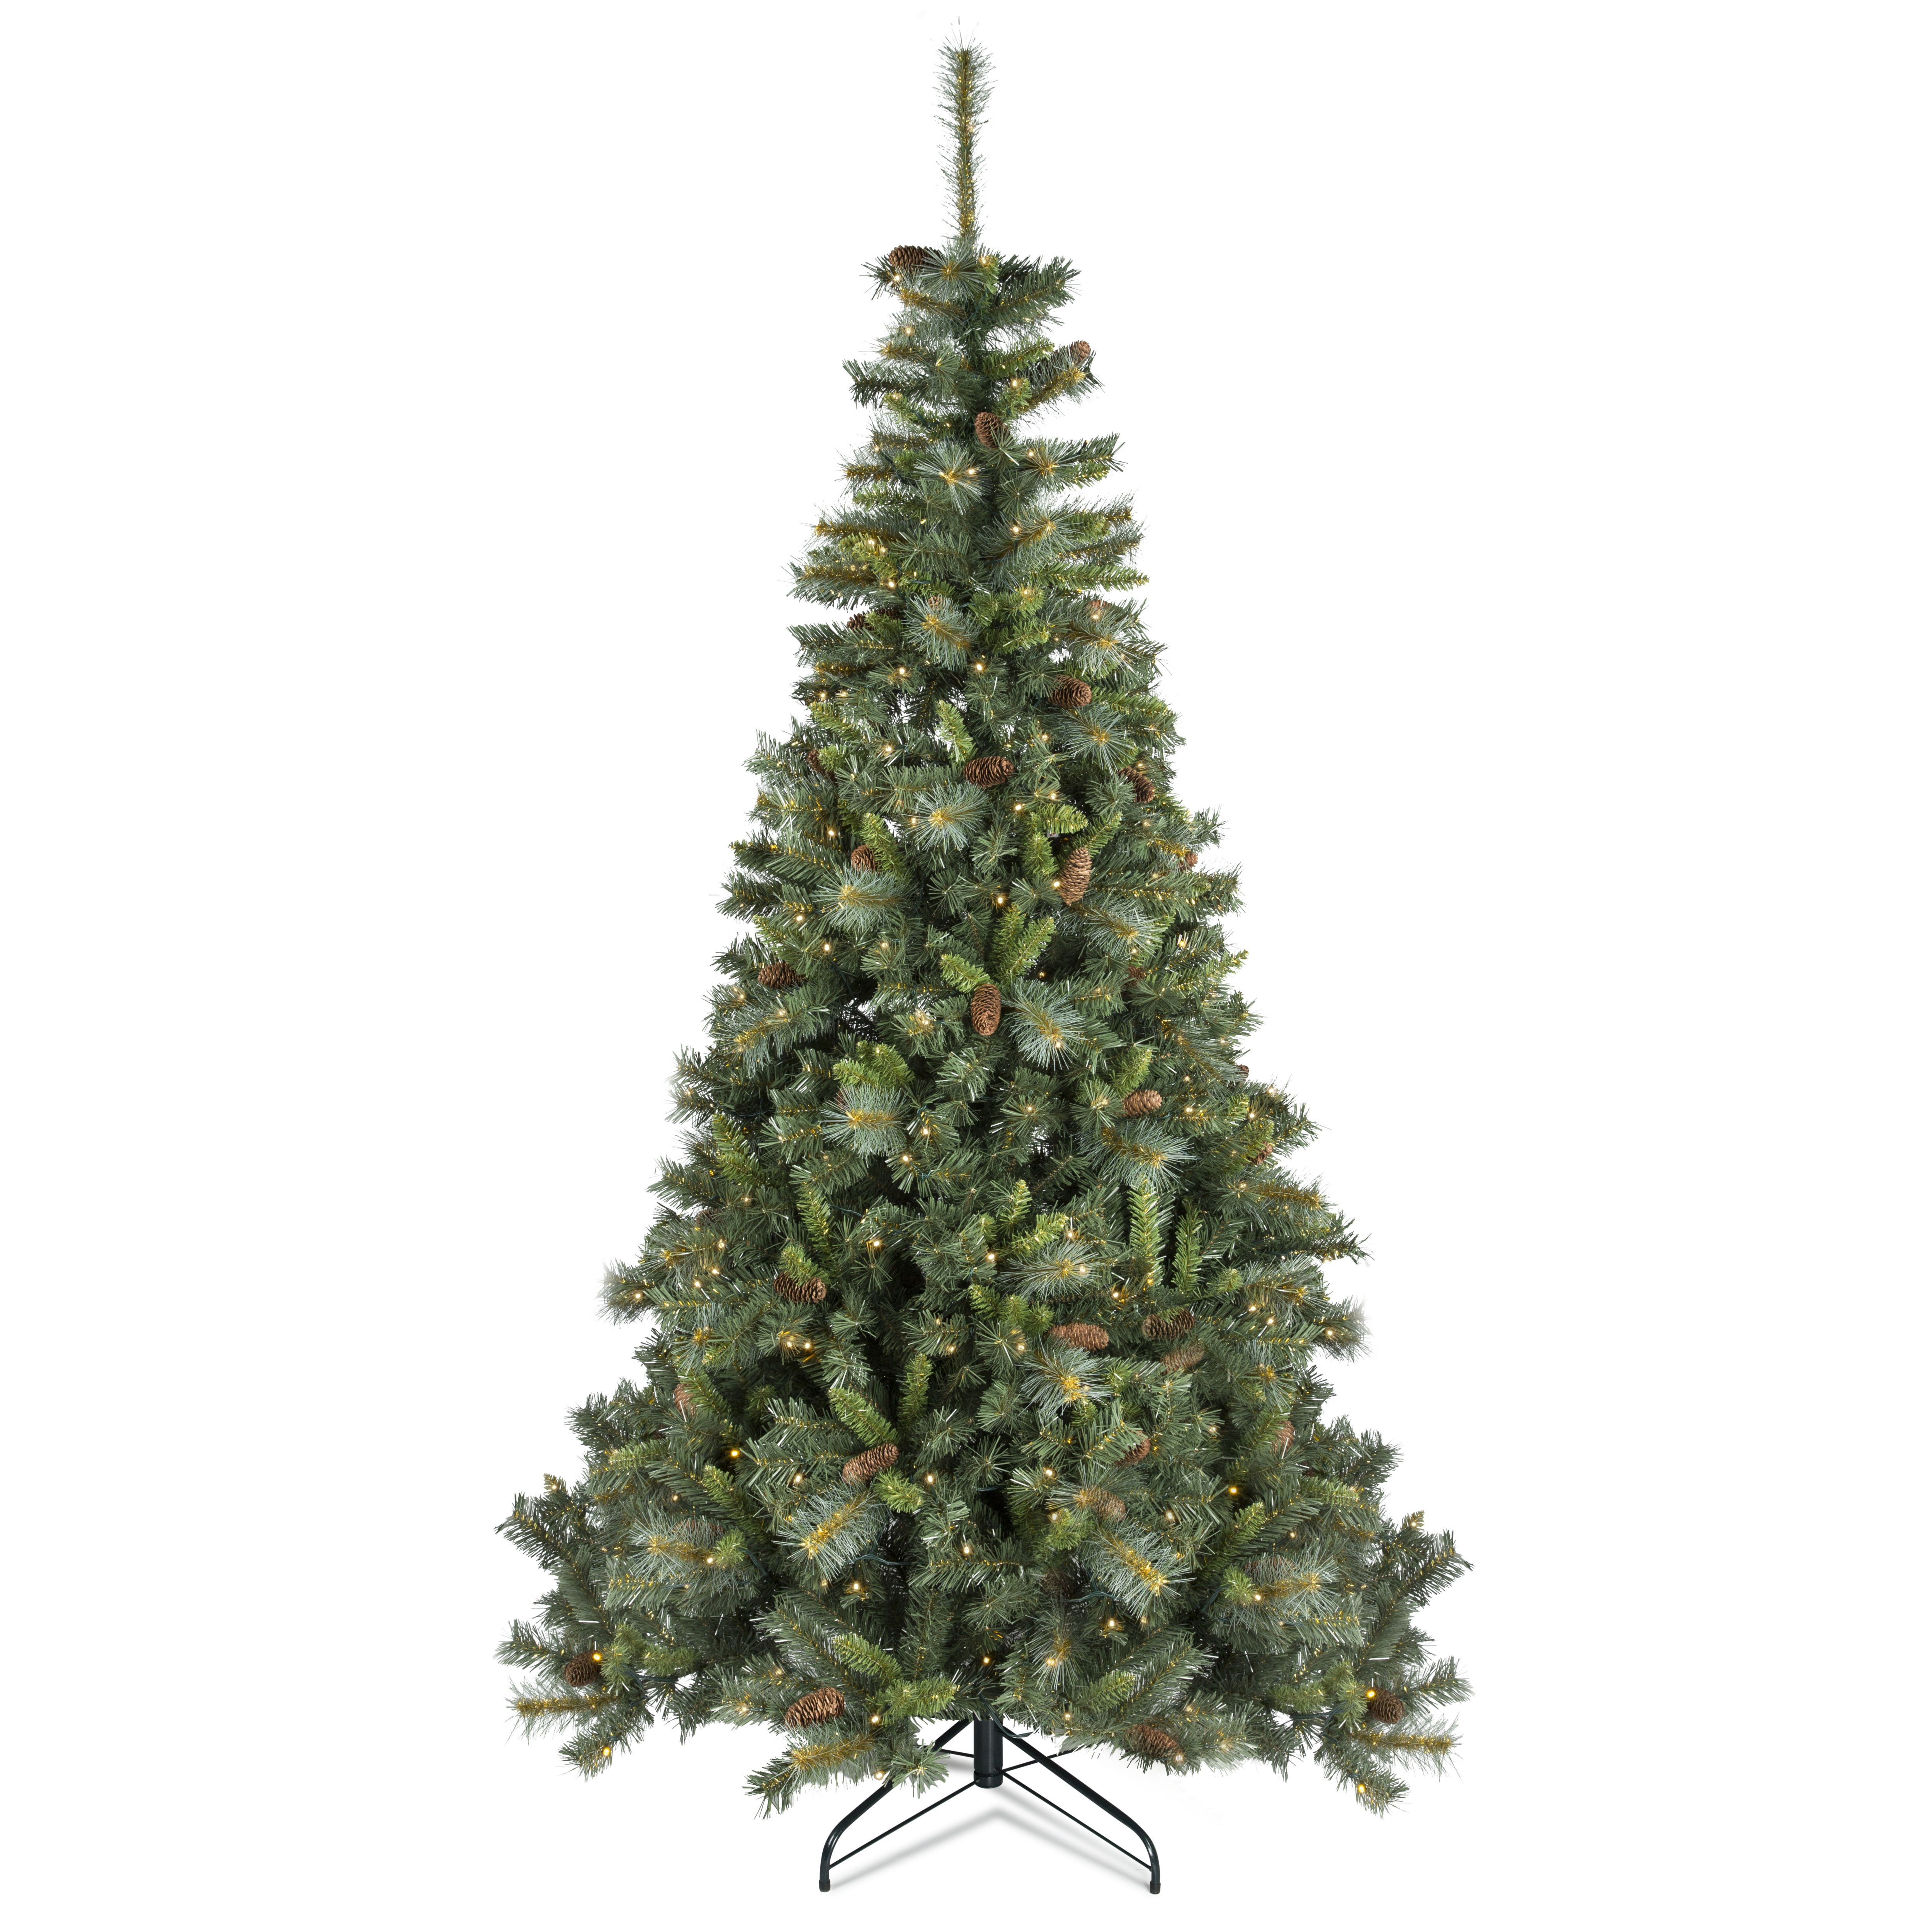 7ft 6In Creston Pre Lit LED Christmas Tree | Departments ...